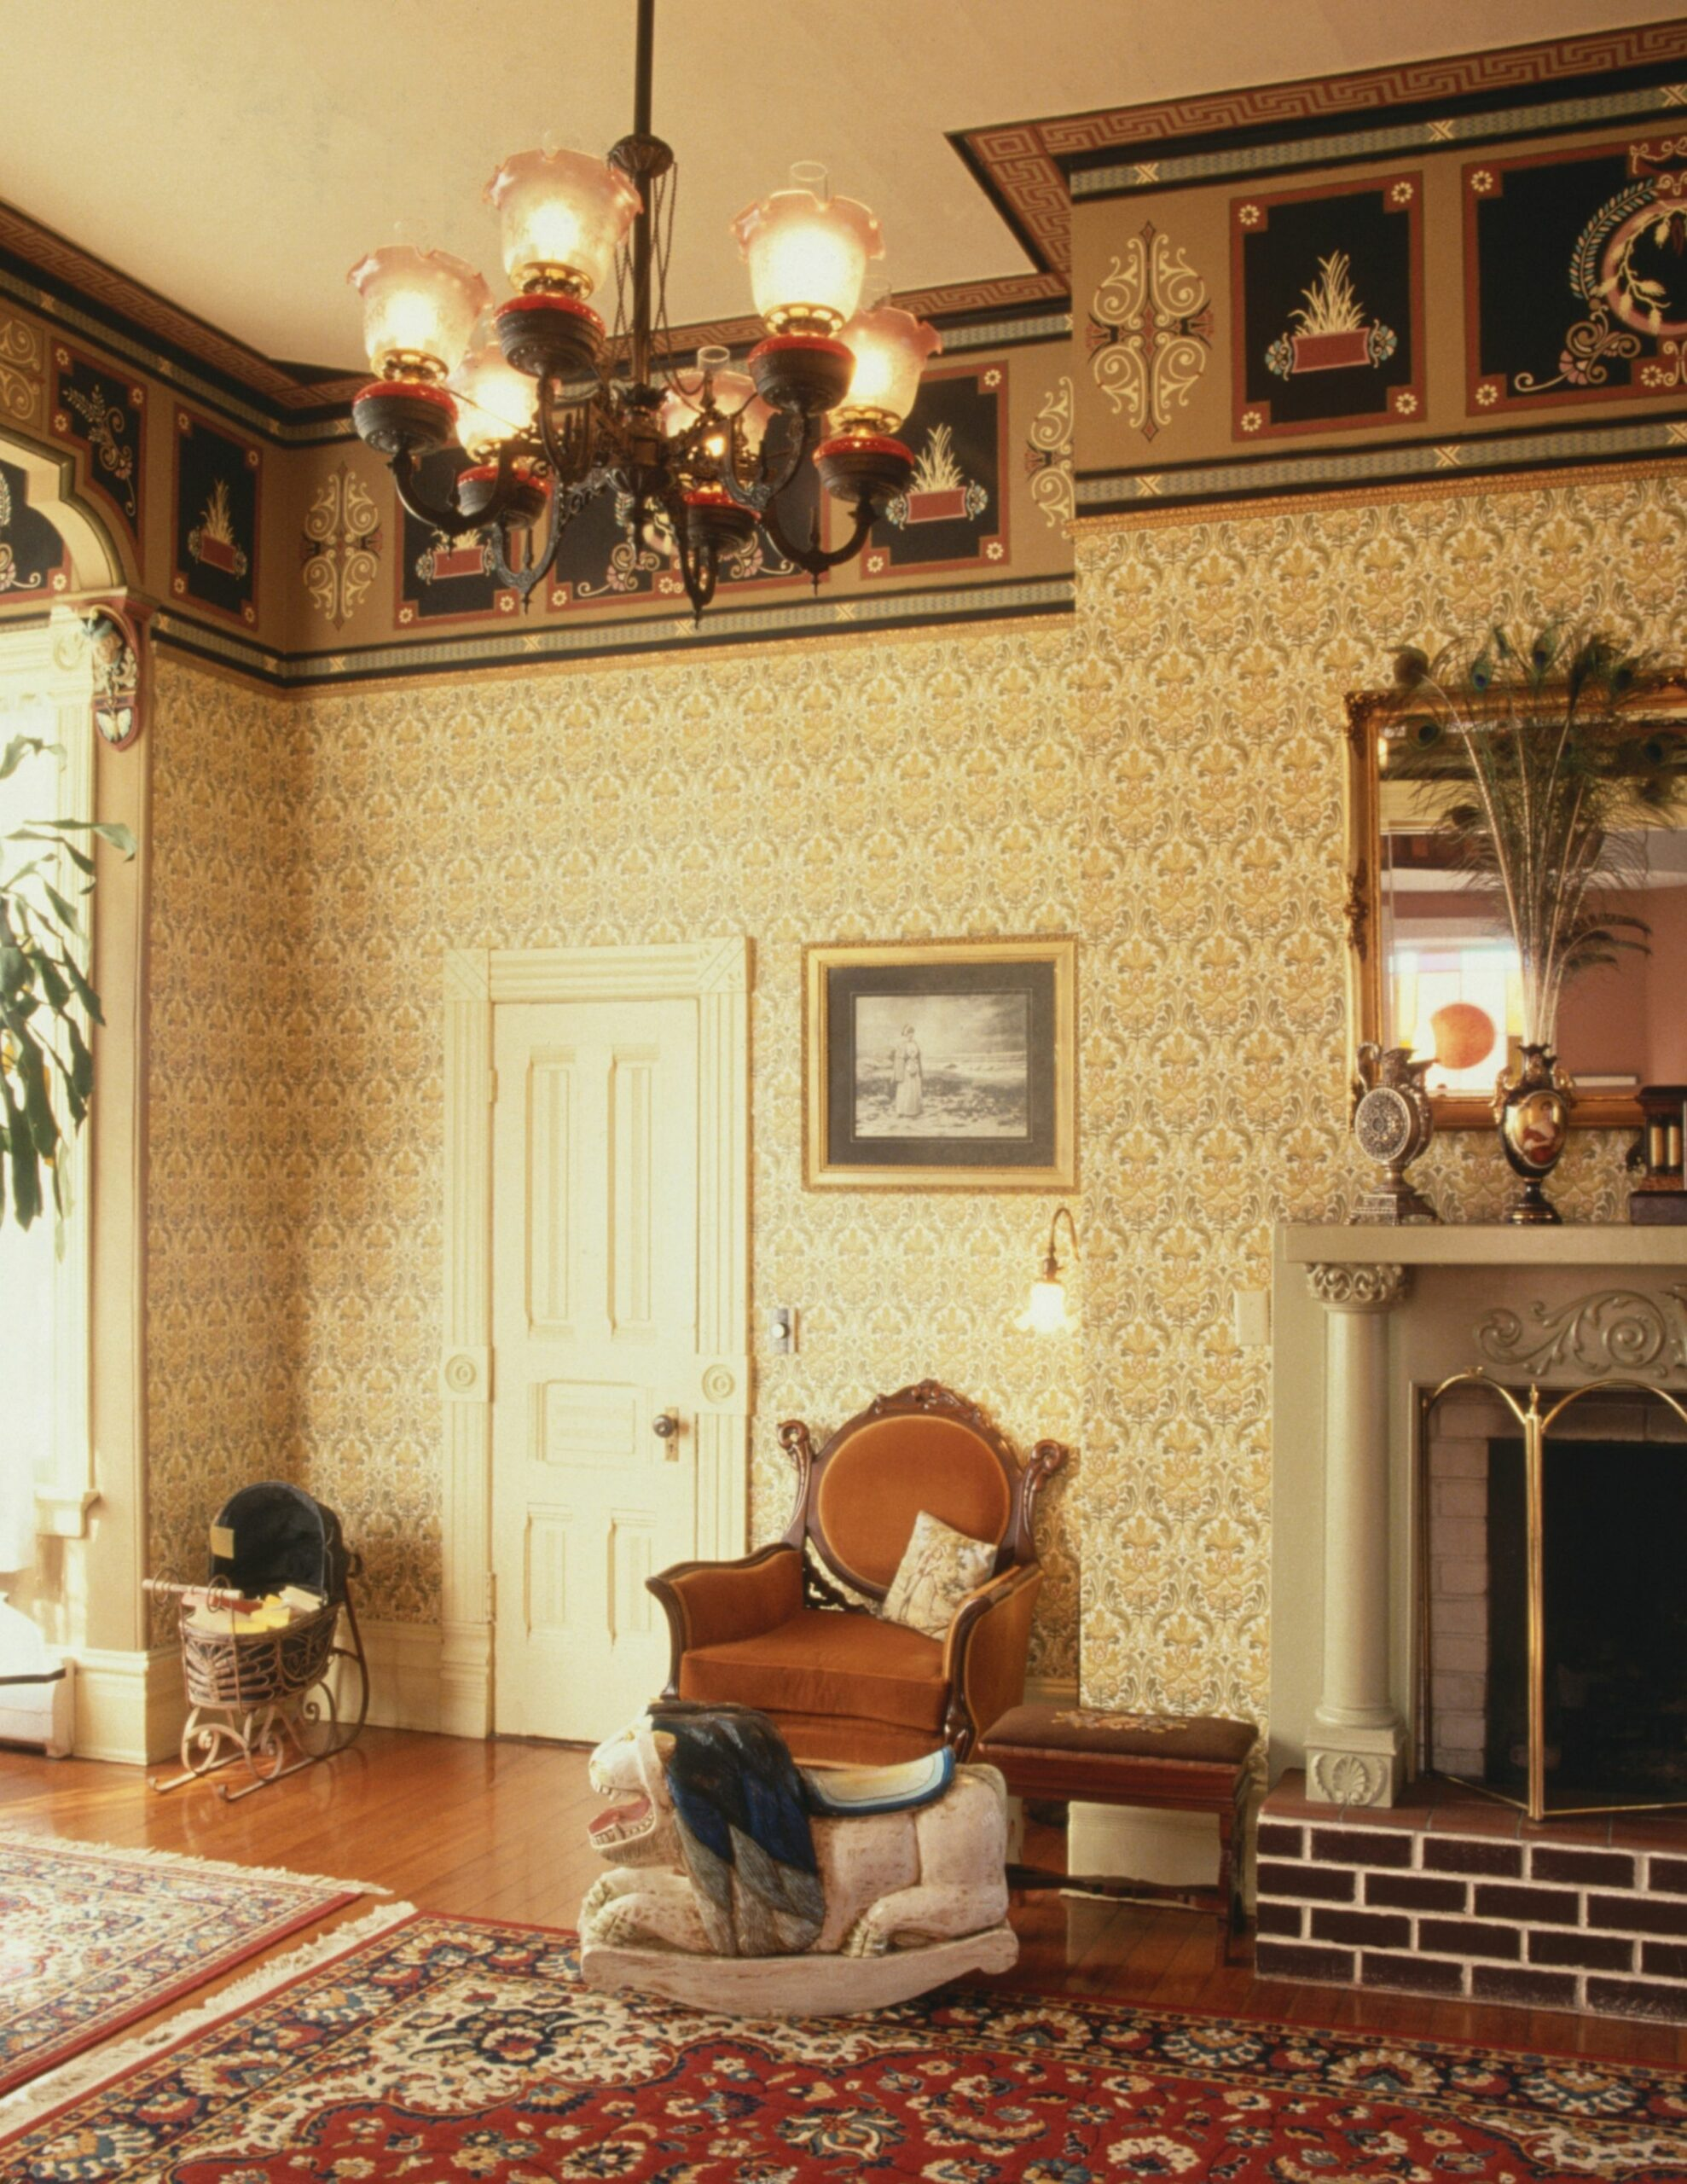 How to Decorate a Home From the Early 12s - victorian wall decor ideas